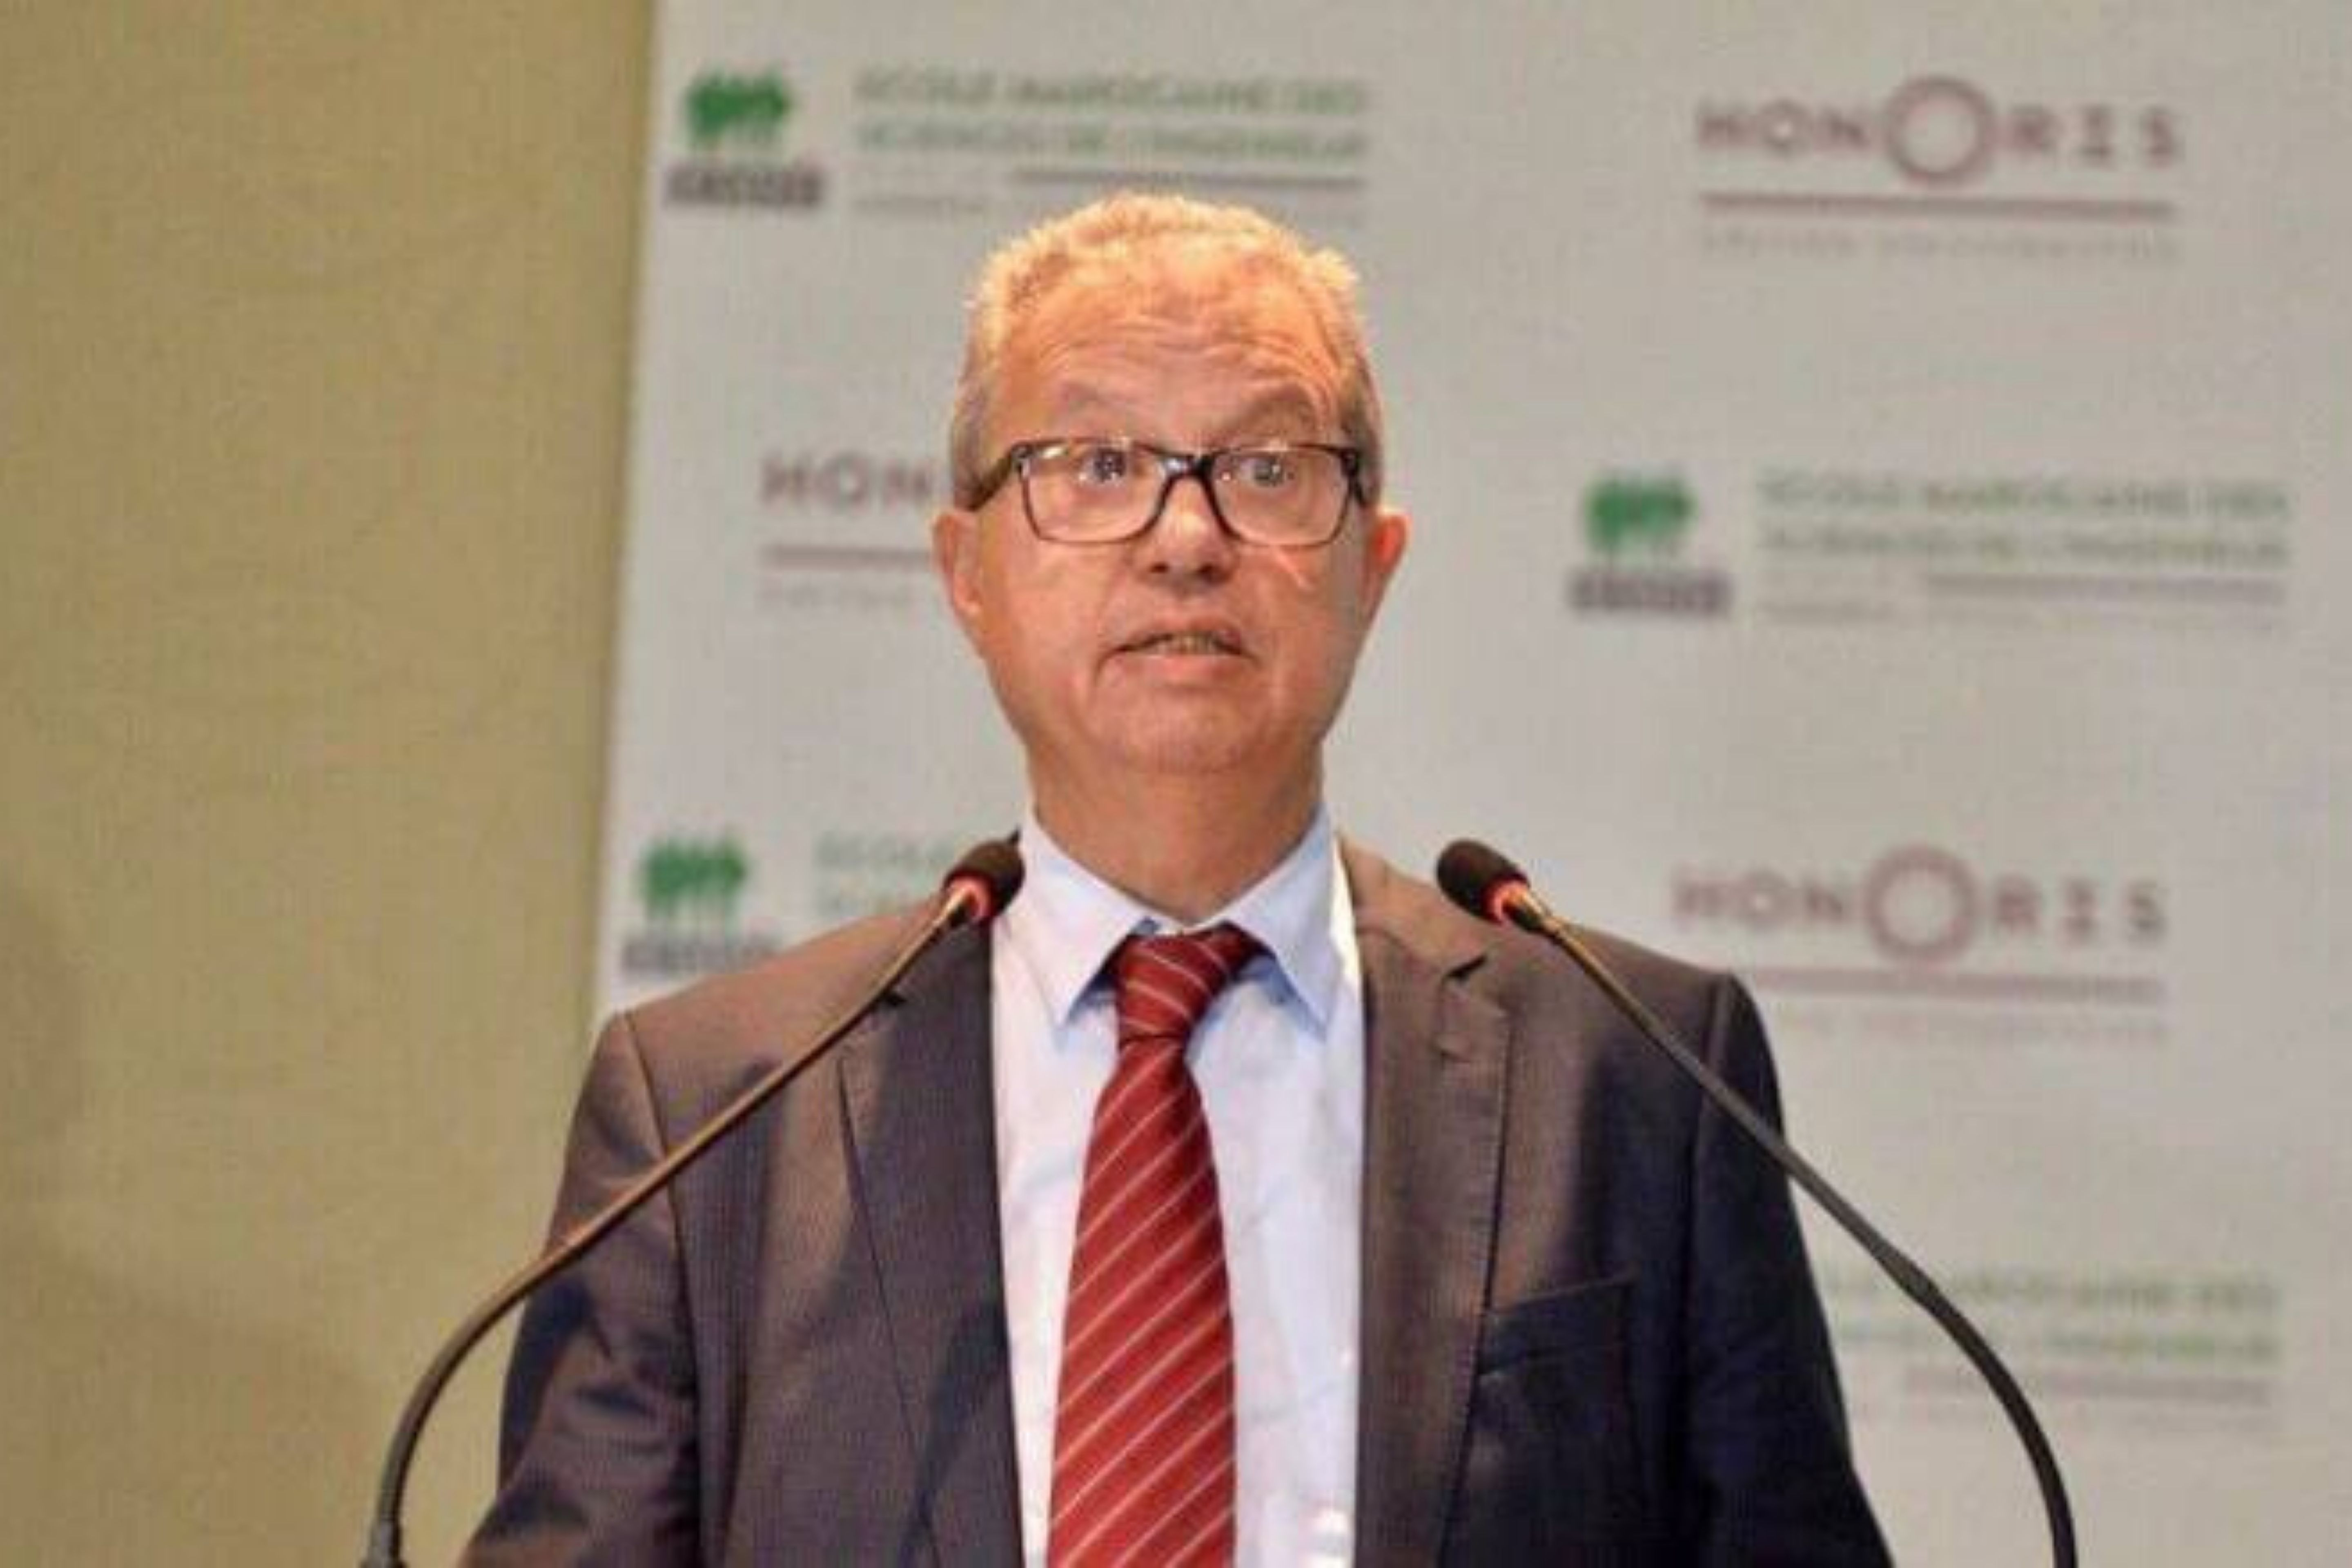 EUROINVEST 2020: Morocco's Most Decorated Professor Is Now Officer Of The Order Of Science And Innovation.